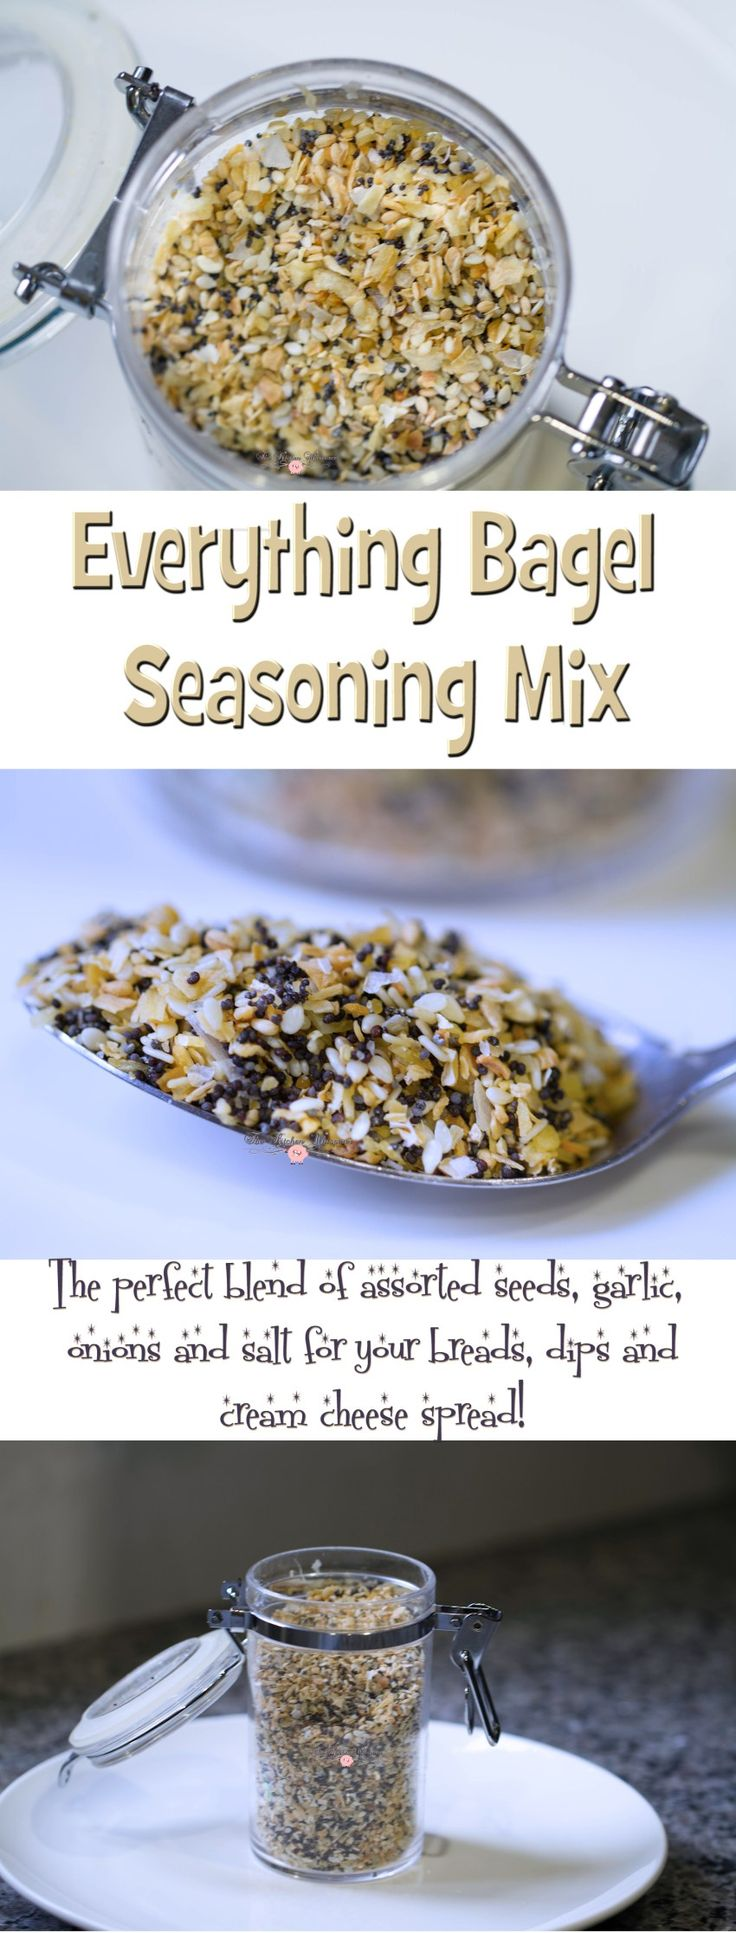 Your life is not complete until you make this Everything Bagel Seasoning Blend! Perfect for bagels, breads, on hummus and with cream cheese!